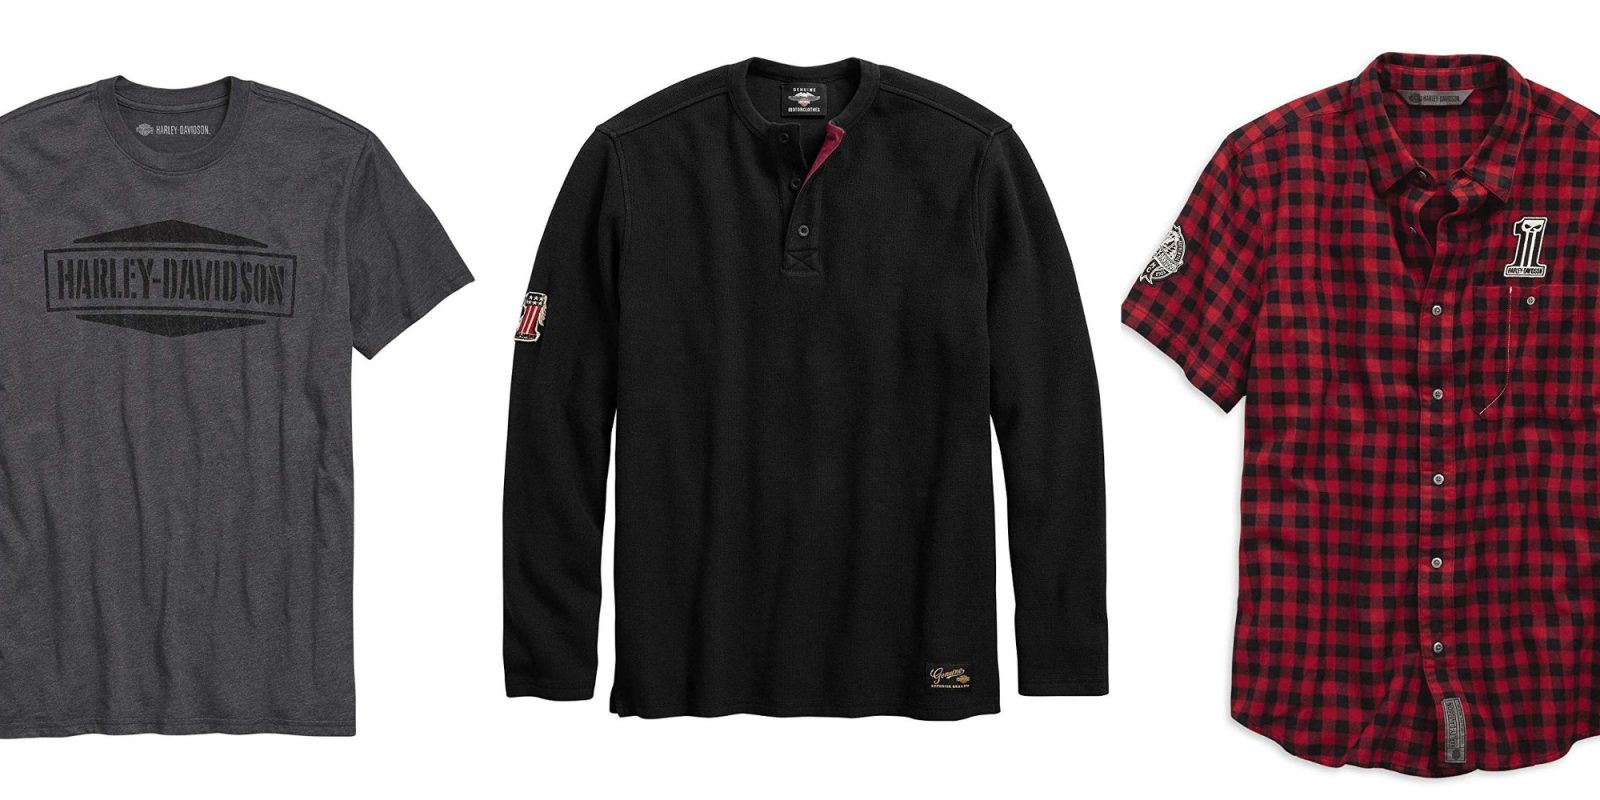 e35be2a0 Harley-Davidson gear from $20 at Amazon today: shirts, hats, more (20% off)